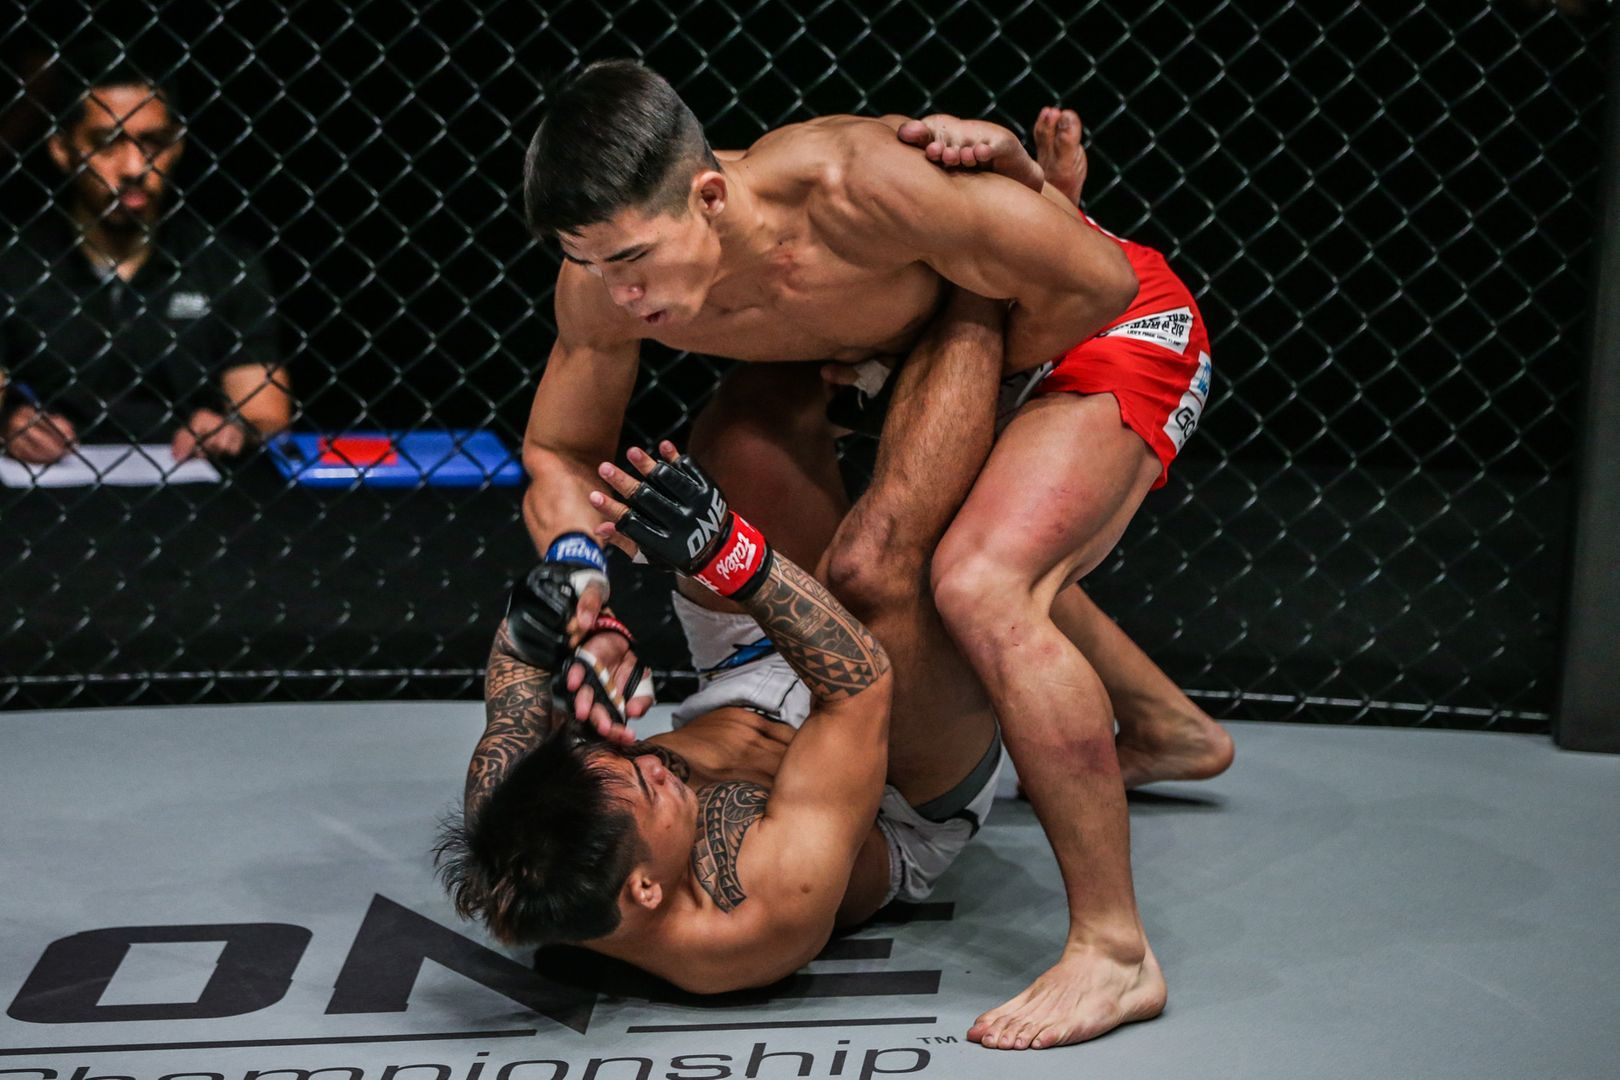 South Korea's Yoon Chang Min unleashes ground and pound